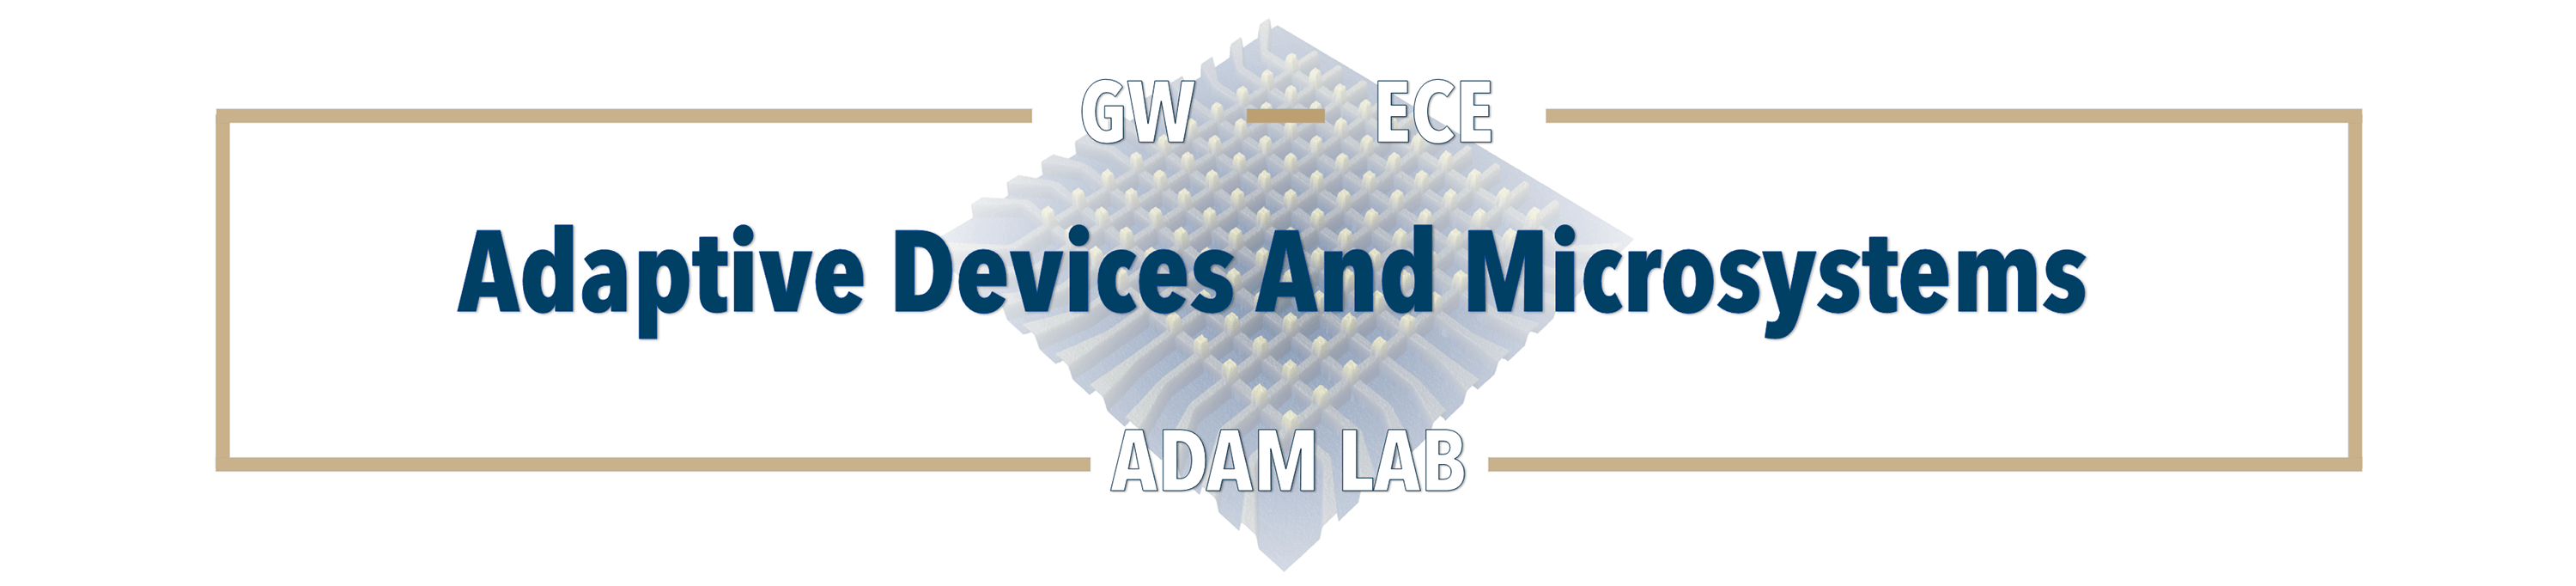 Adaptive Devices and Microsystems – GW ECE Adam Lab